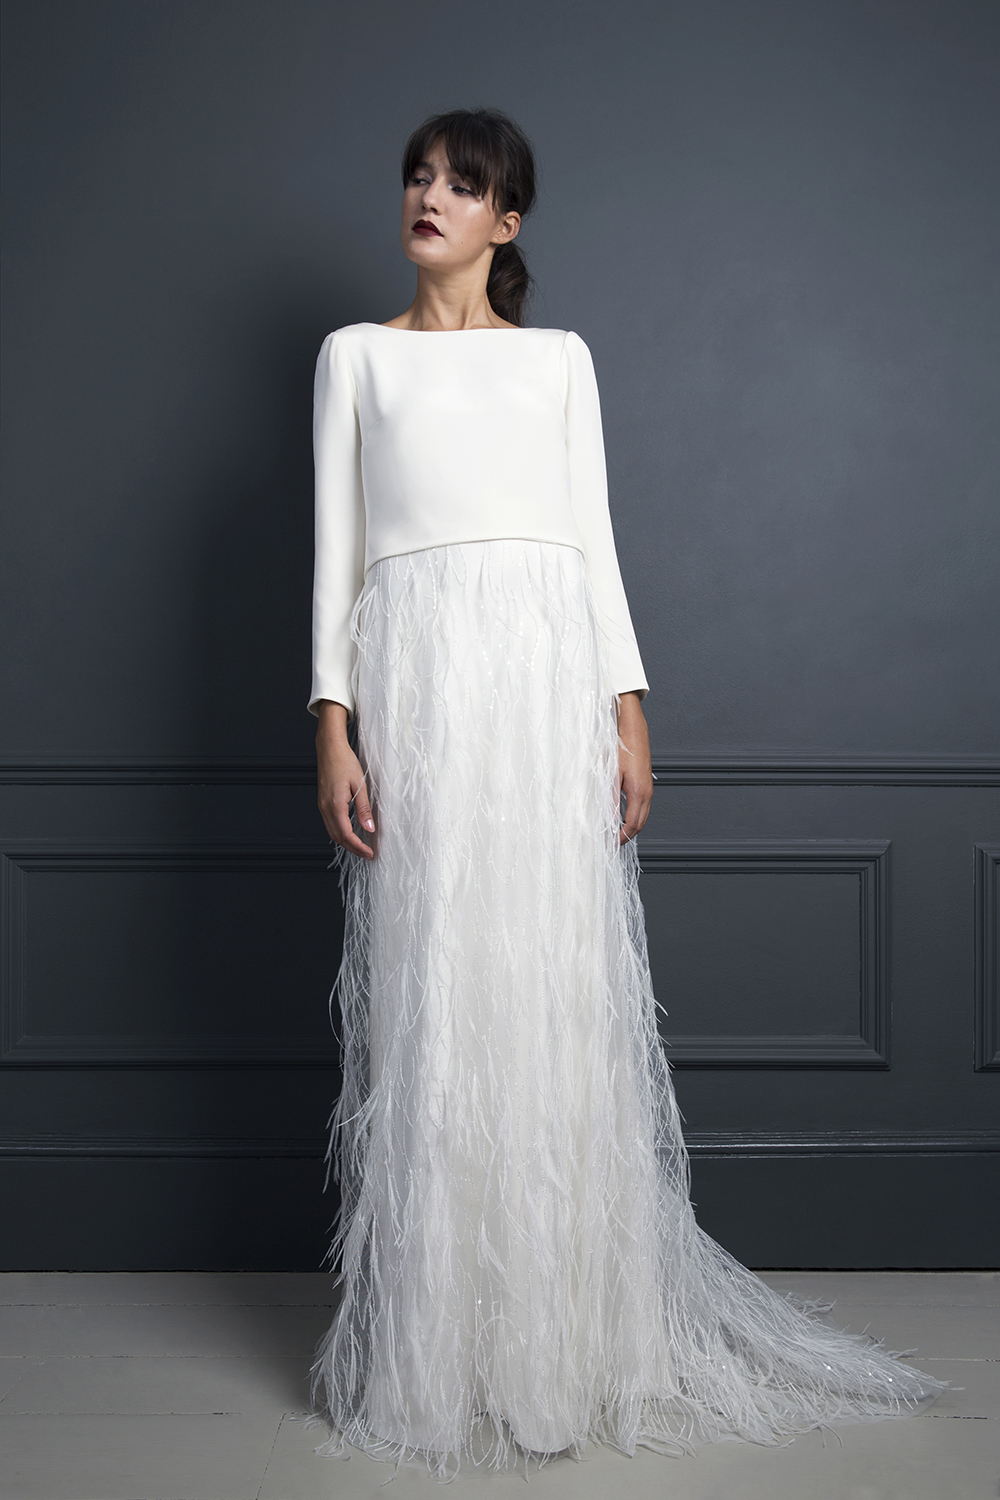 LAURA DRAPE TOP & MARIBOU SKIRT | WEDDING DRESS BY HALFPENNY LONDON